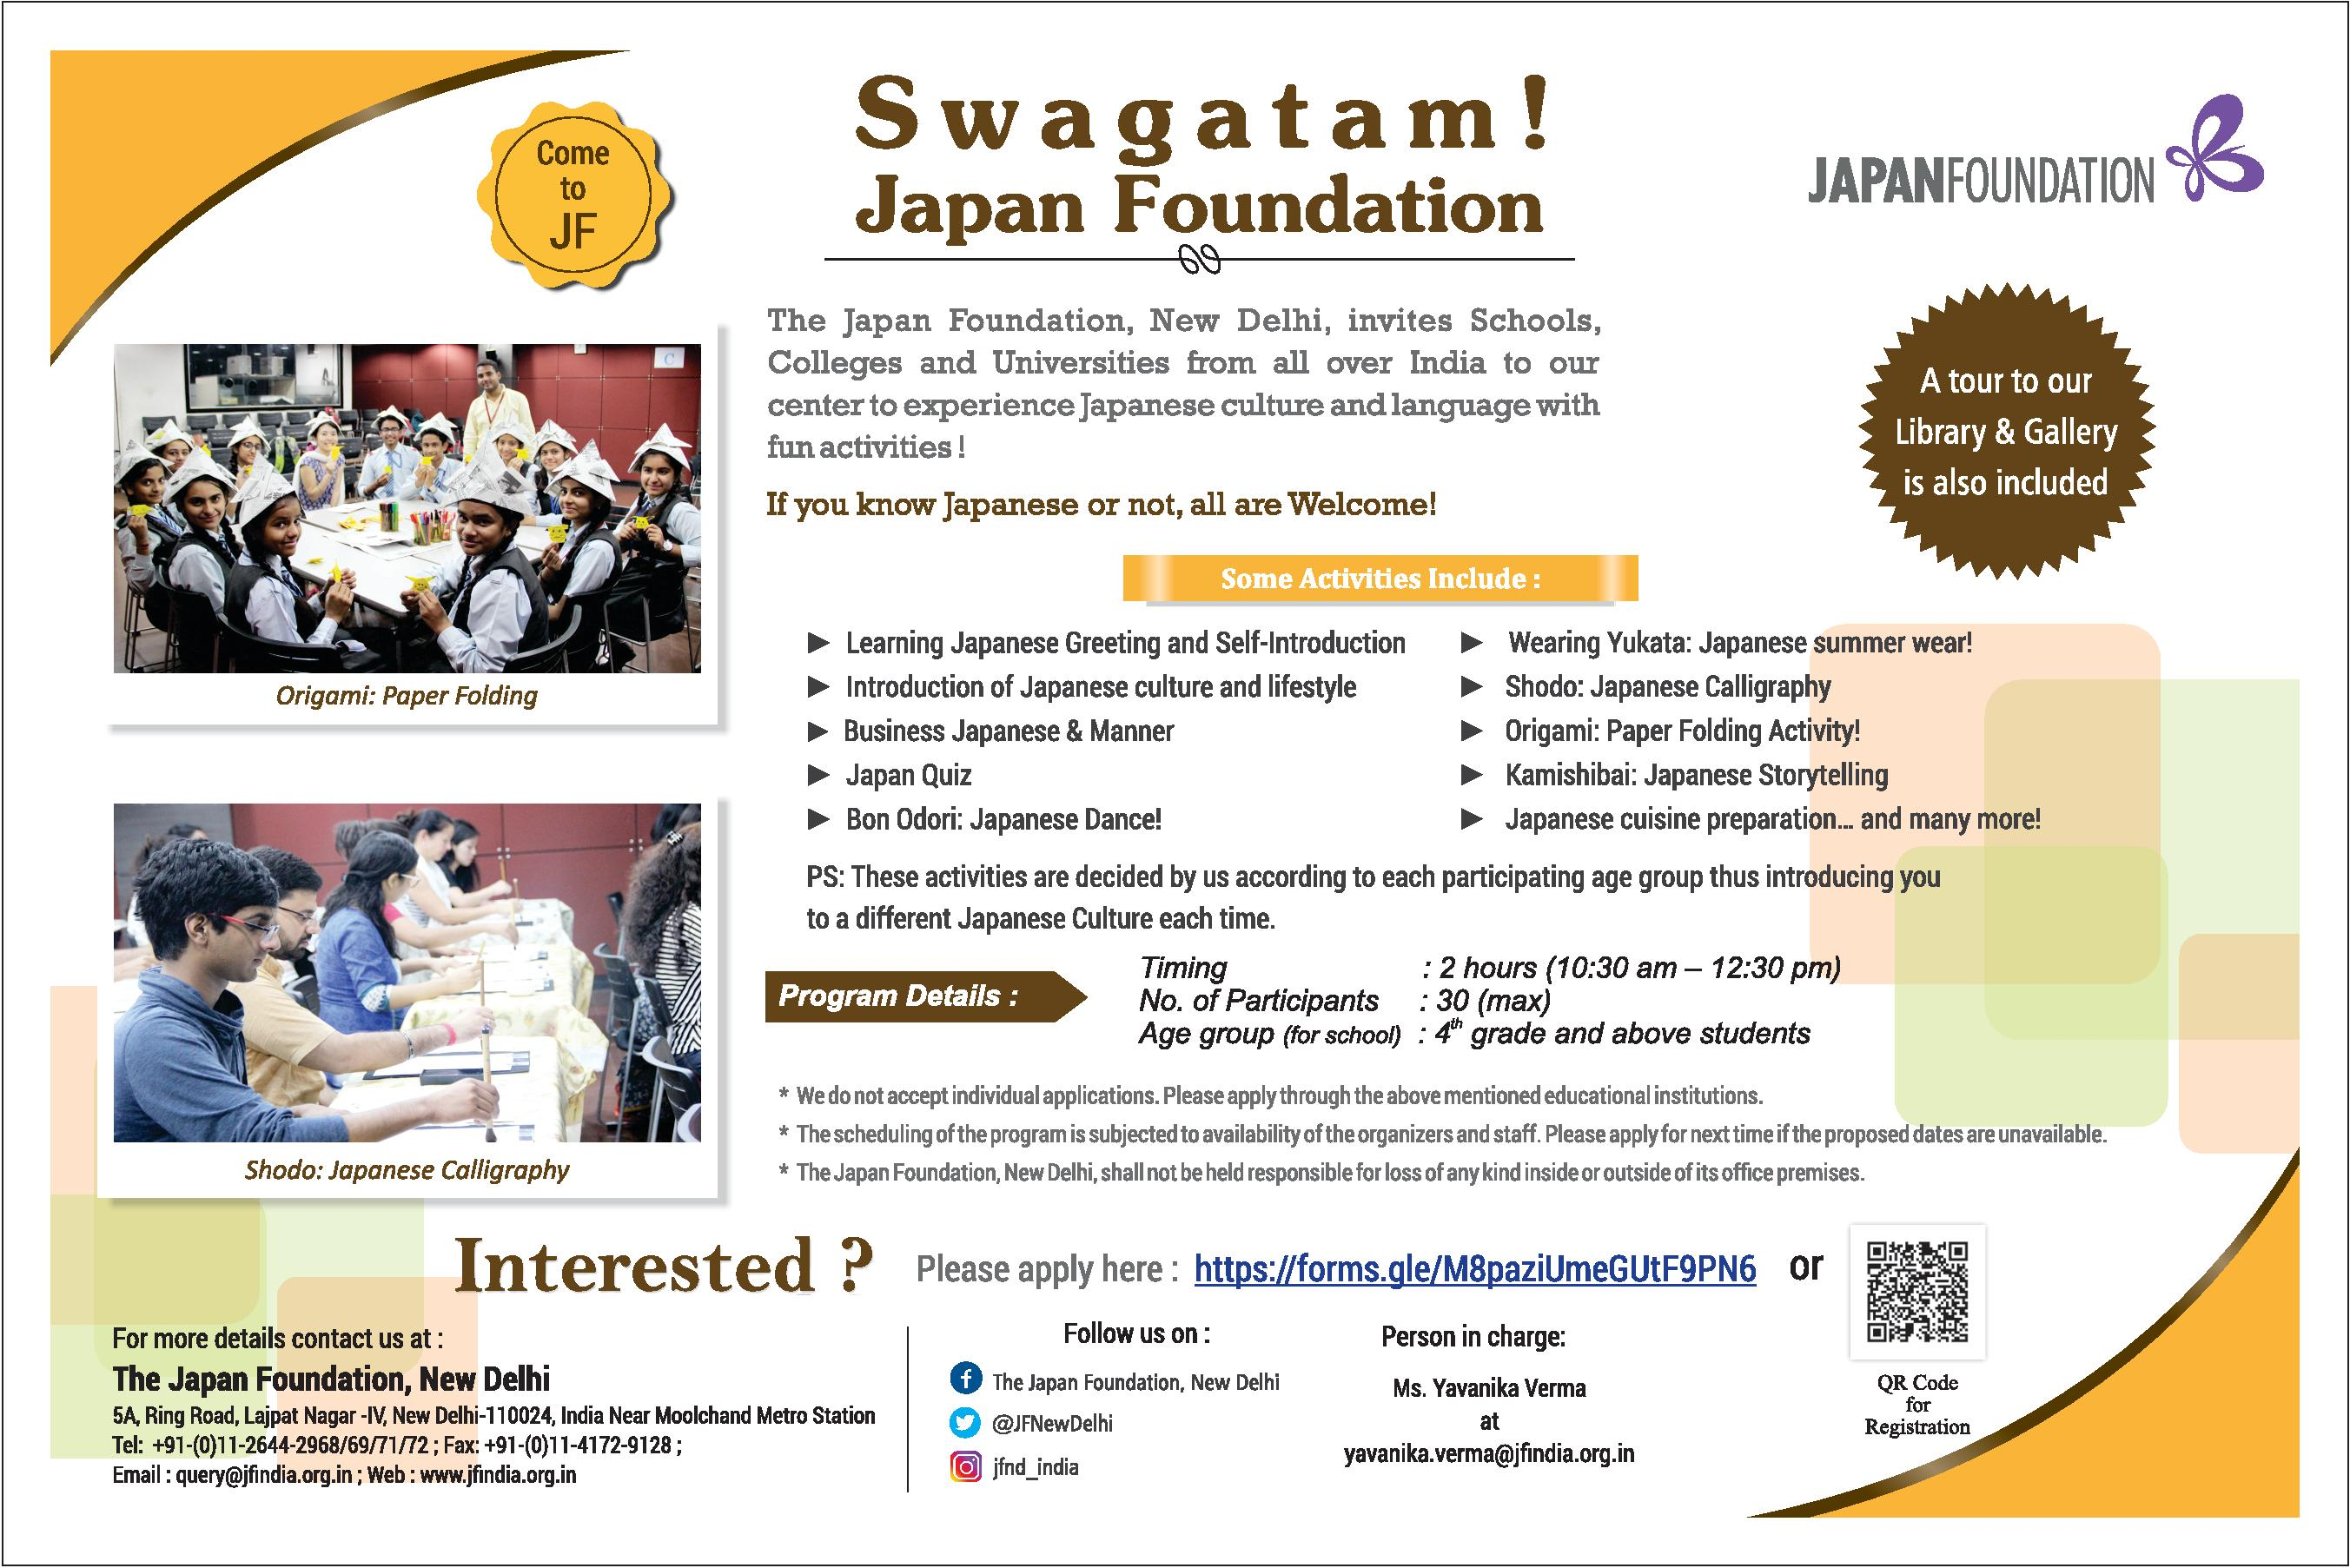 SWAGATAM! JAPAN FOUNDATION